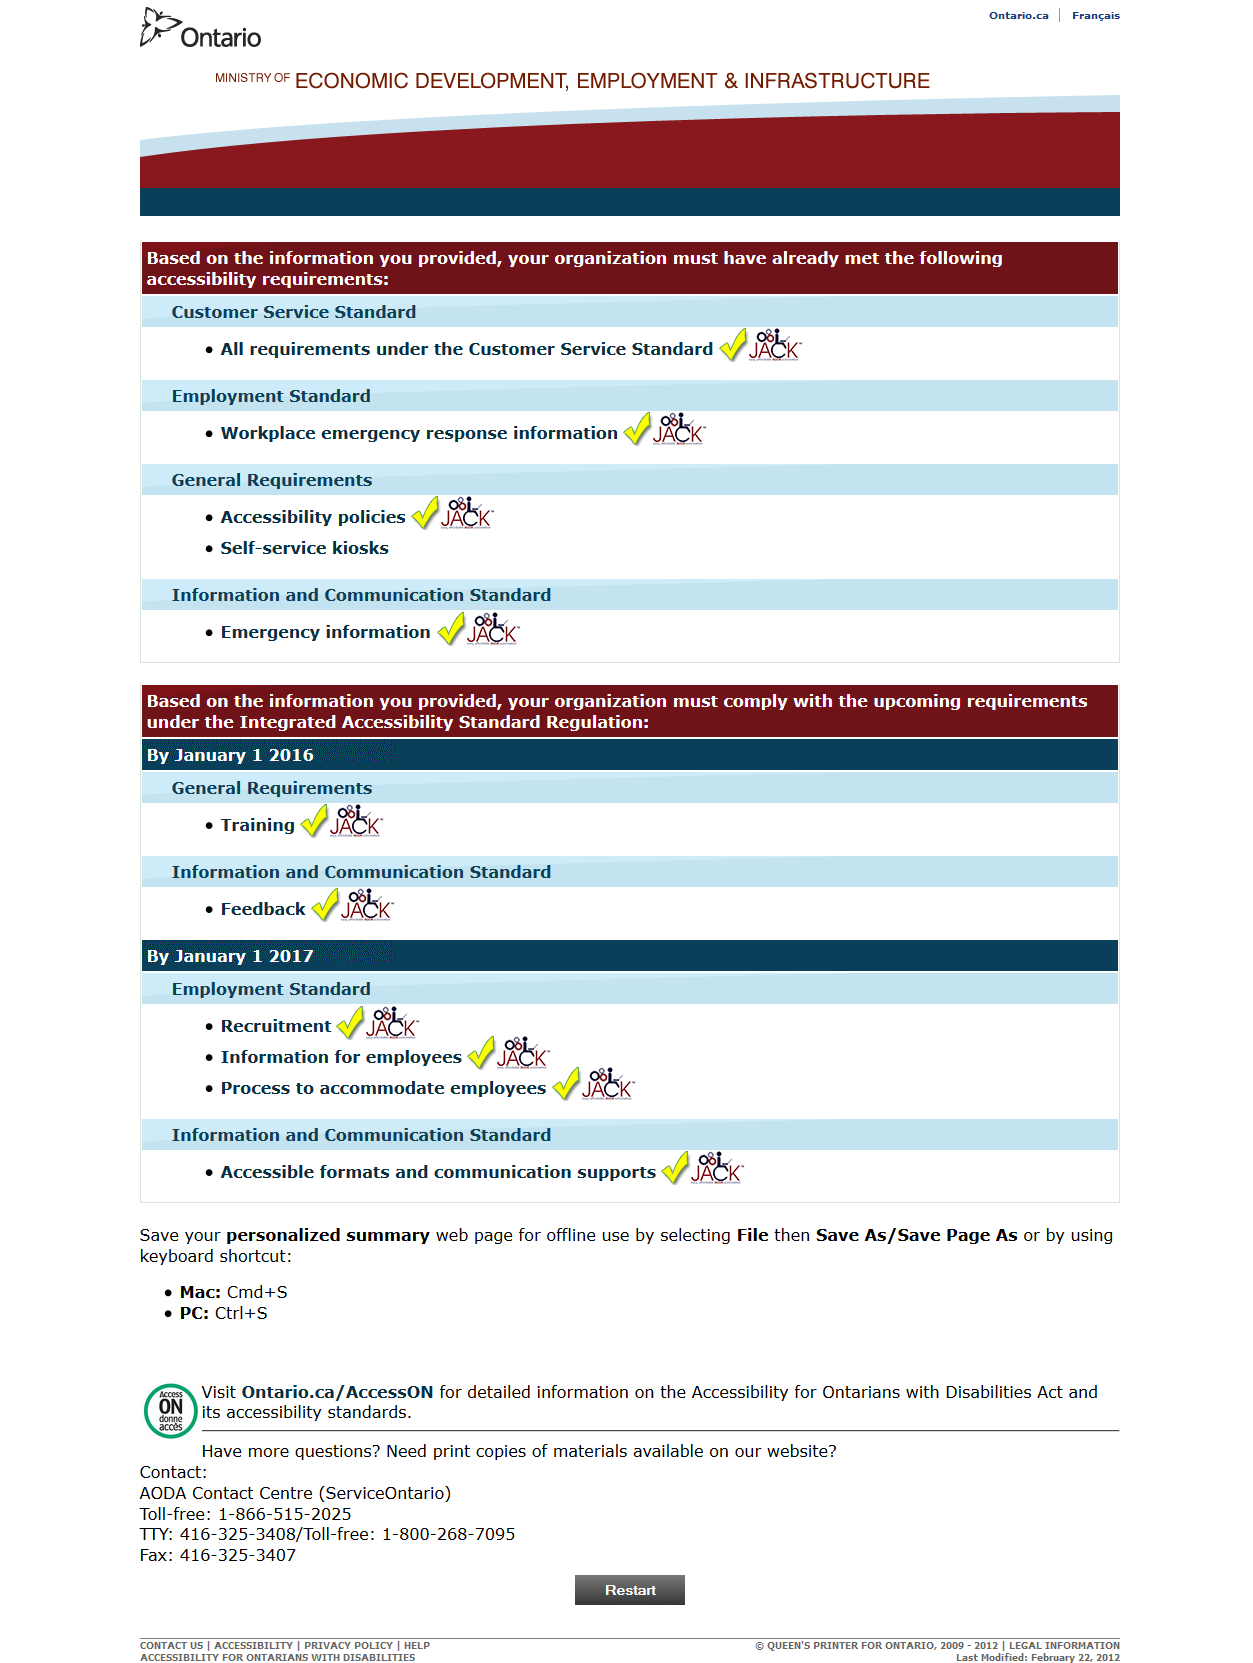 aoda compliance wizard REQUIREMENTS 1-19 employees